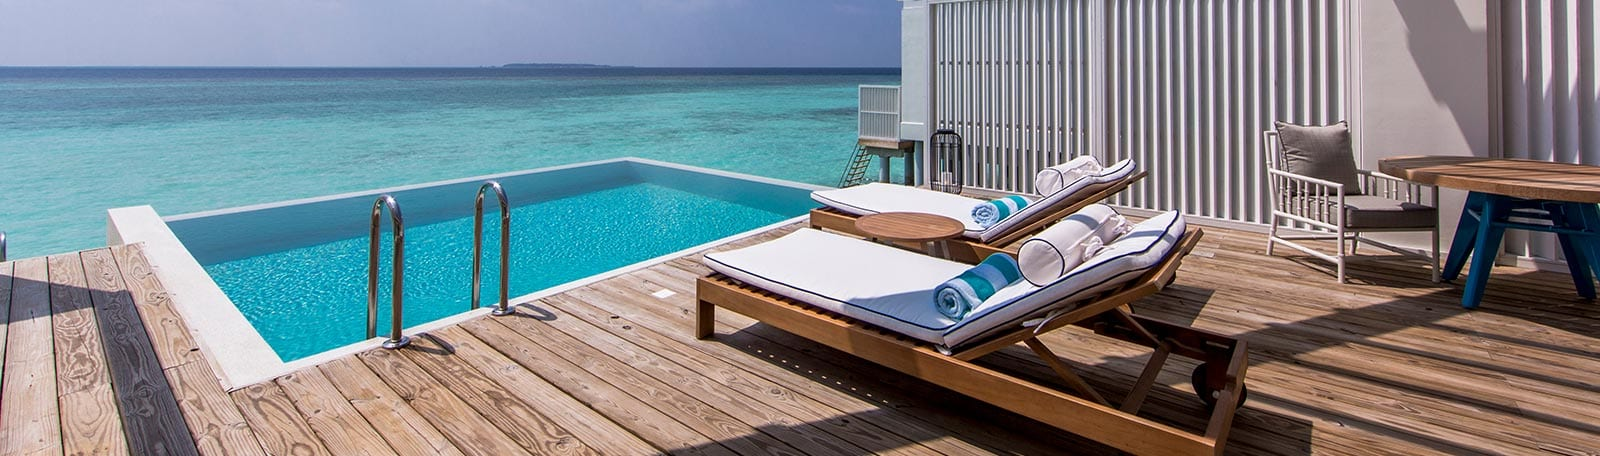 Room with lagoon view at Amilla Fushi